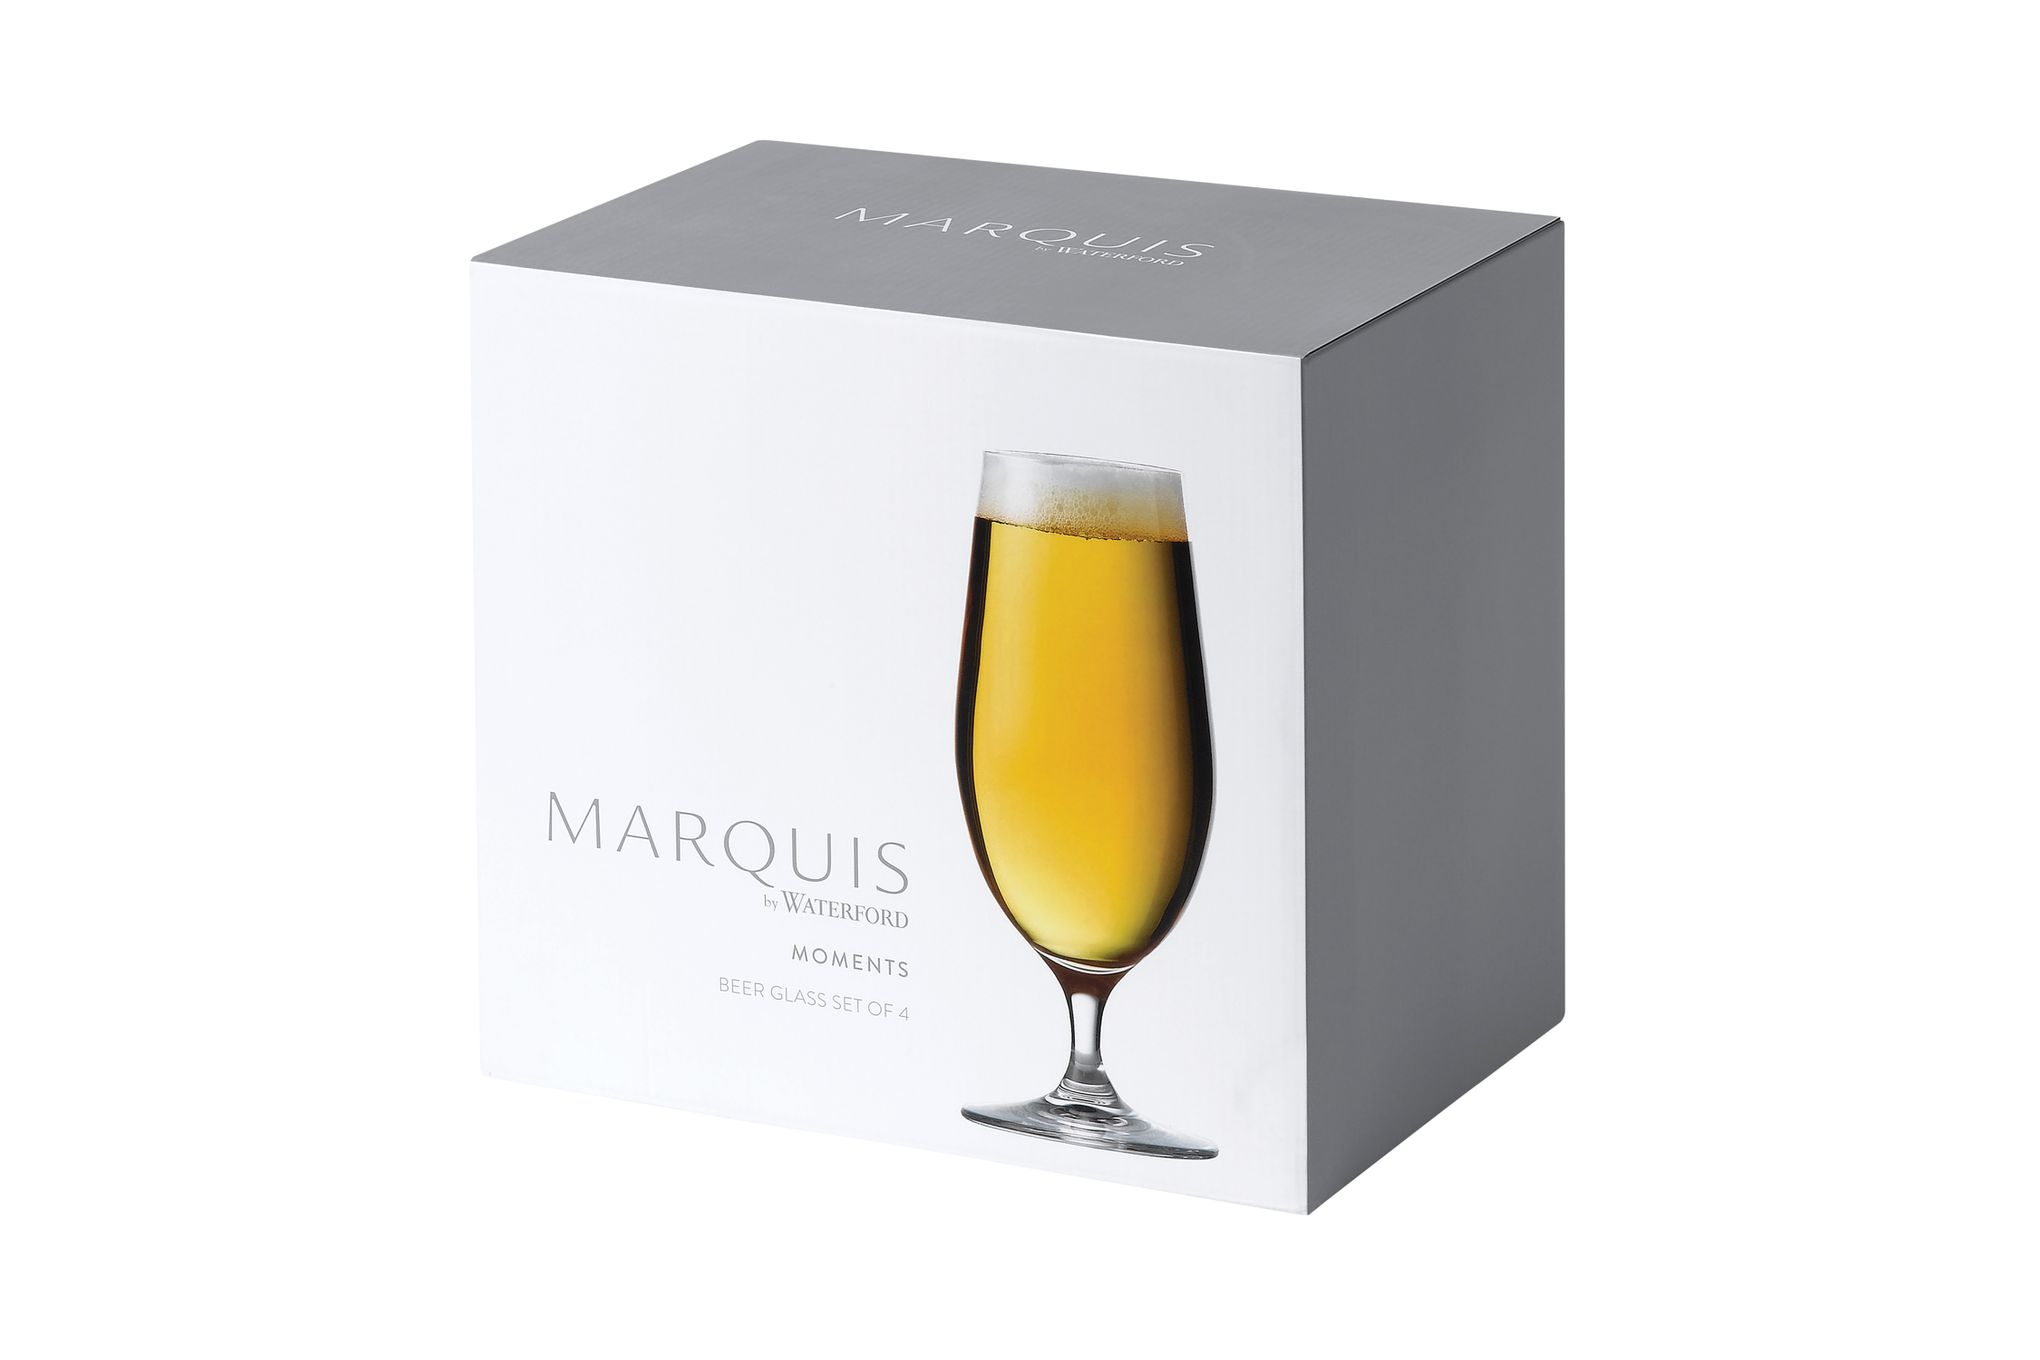 Waterford Marquis Moments Beer Glass - Set of 4 460ml thumb 1